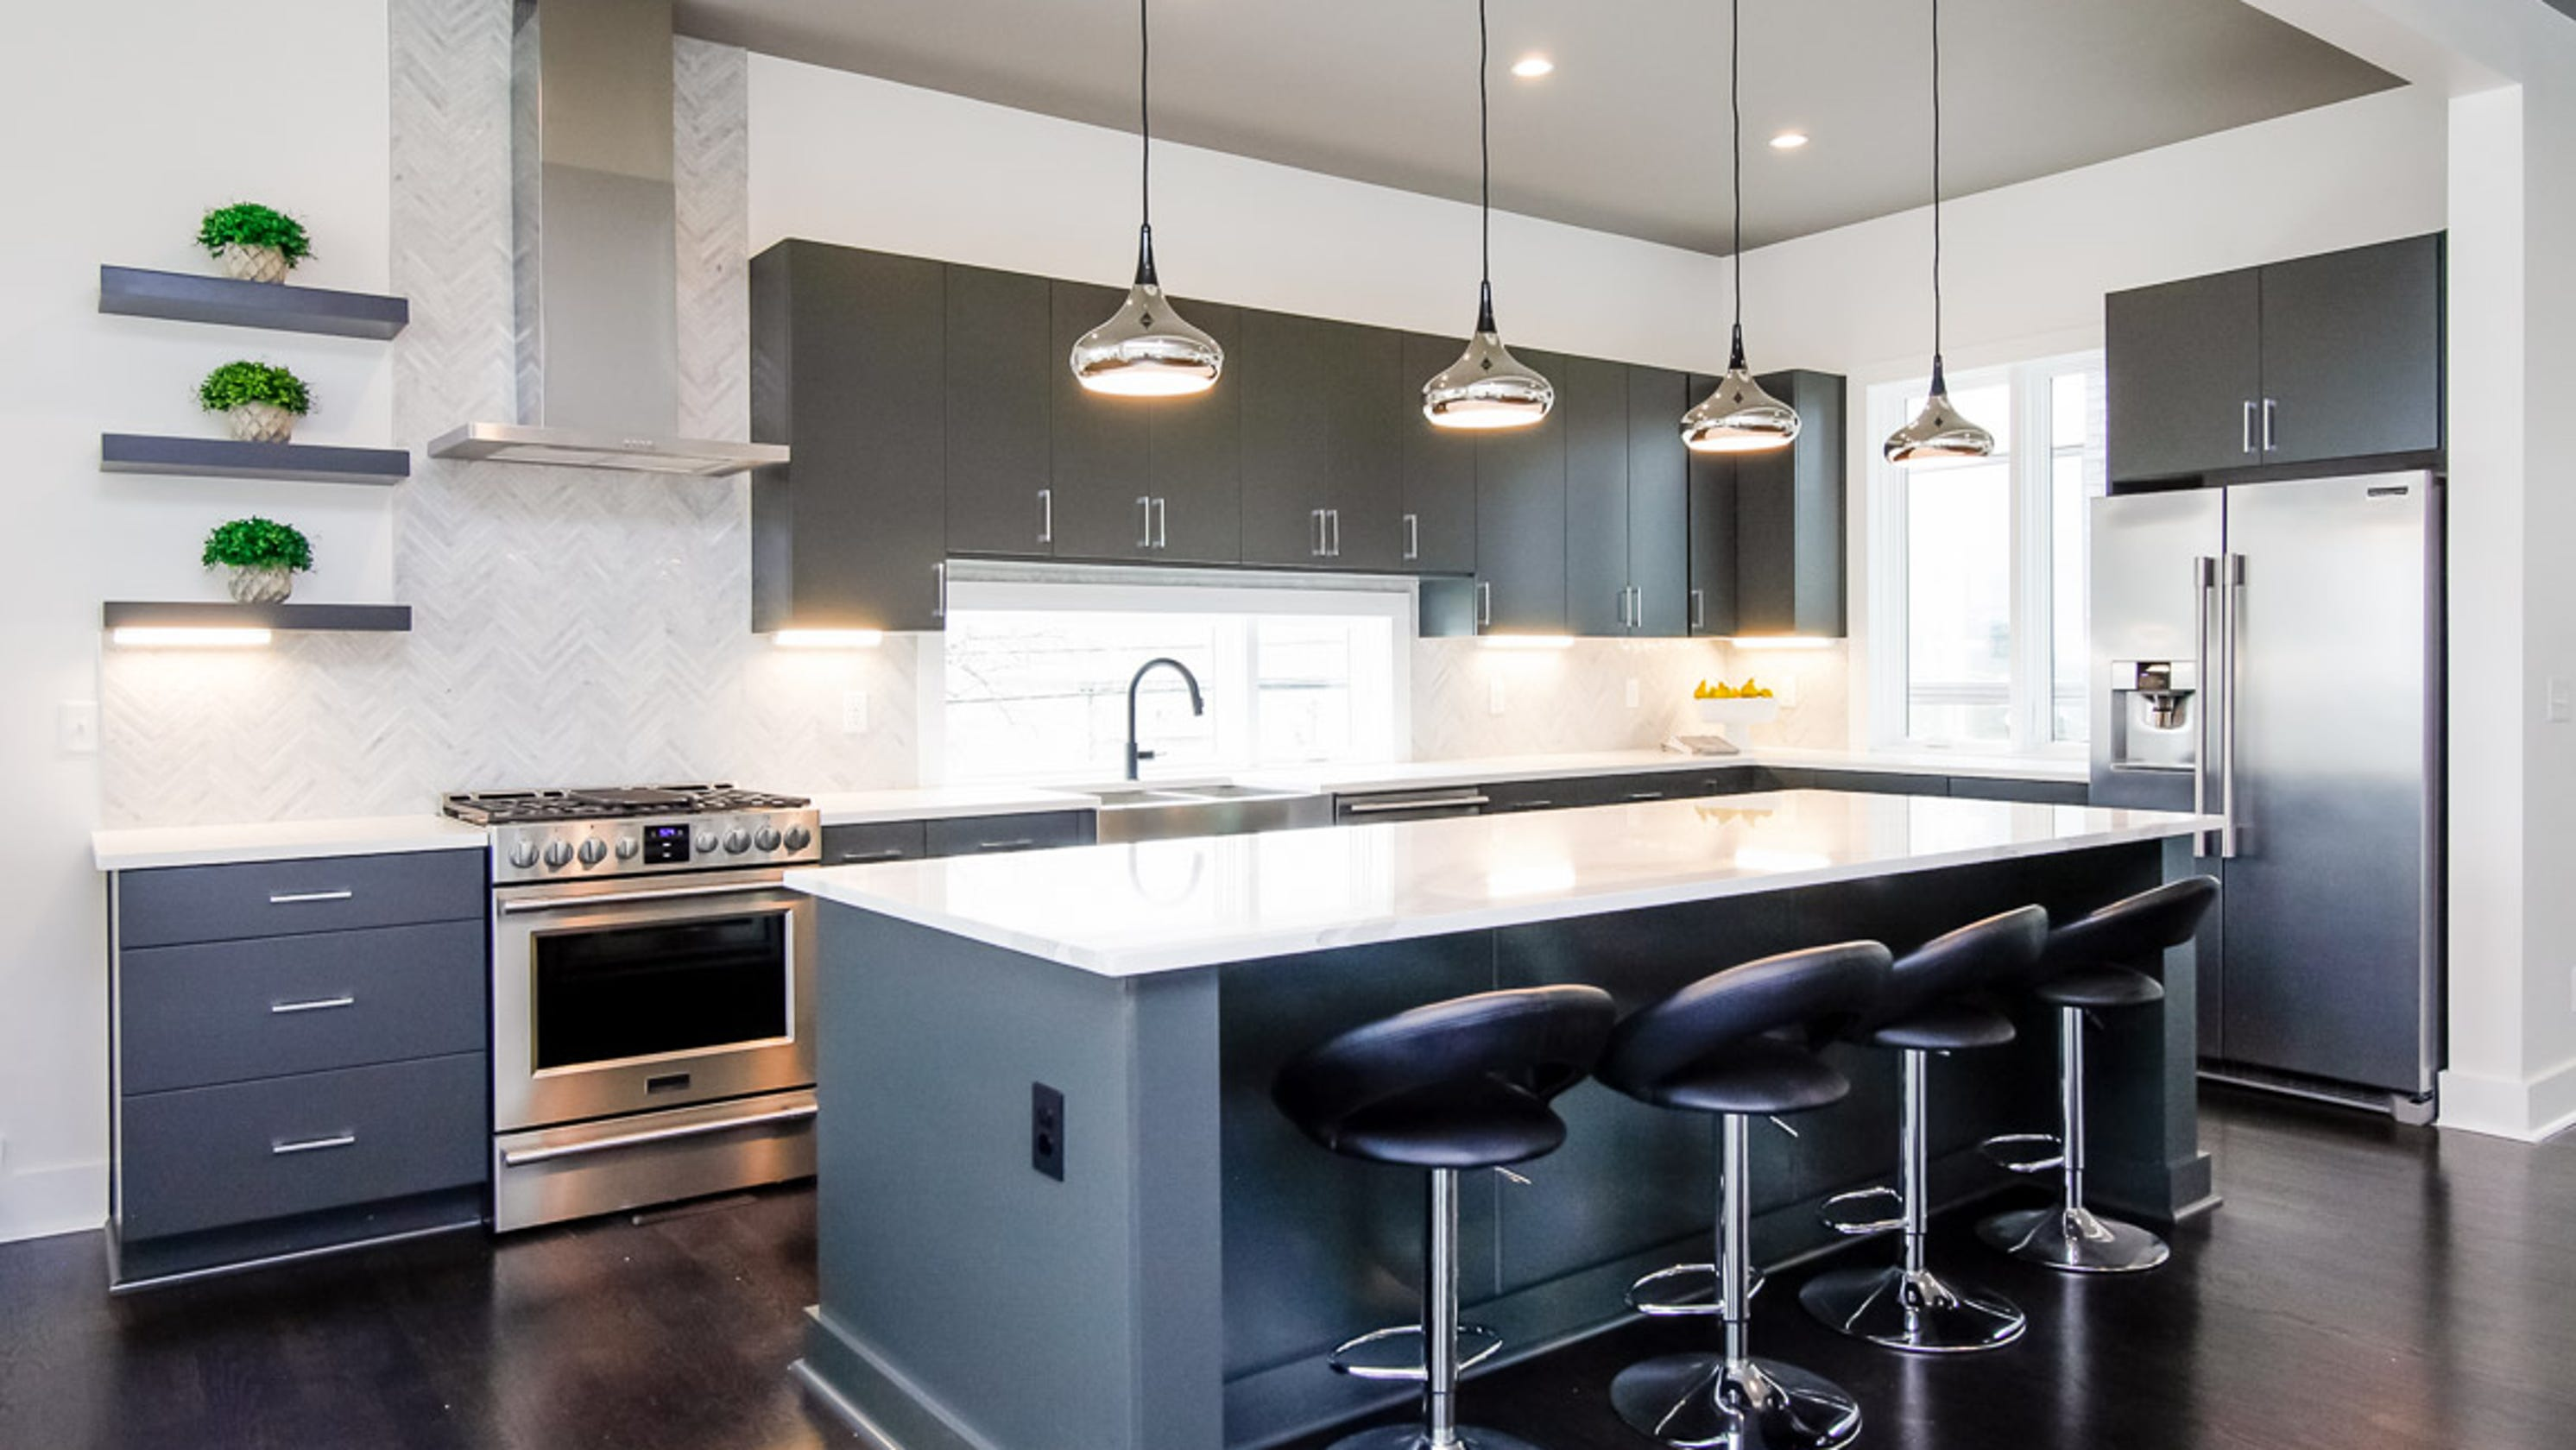 Trends: Make a statement in the kitchen with custom cabinets